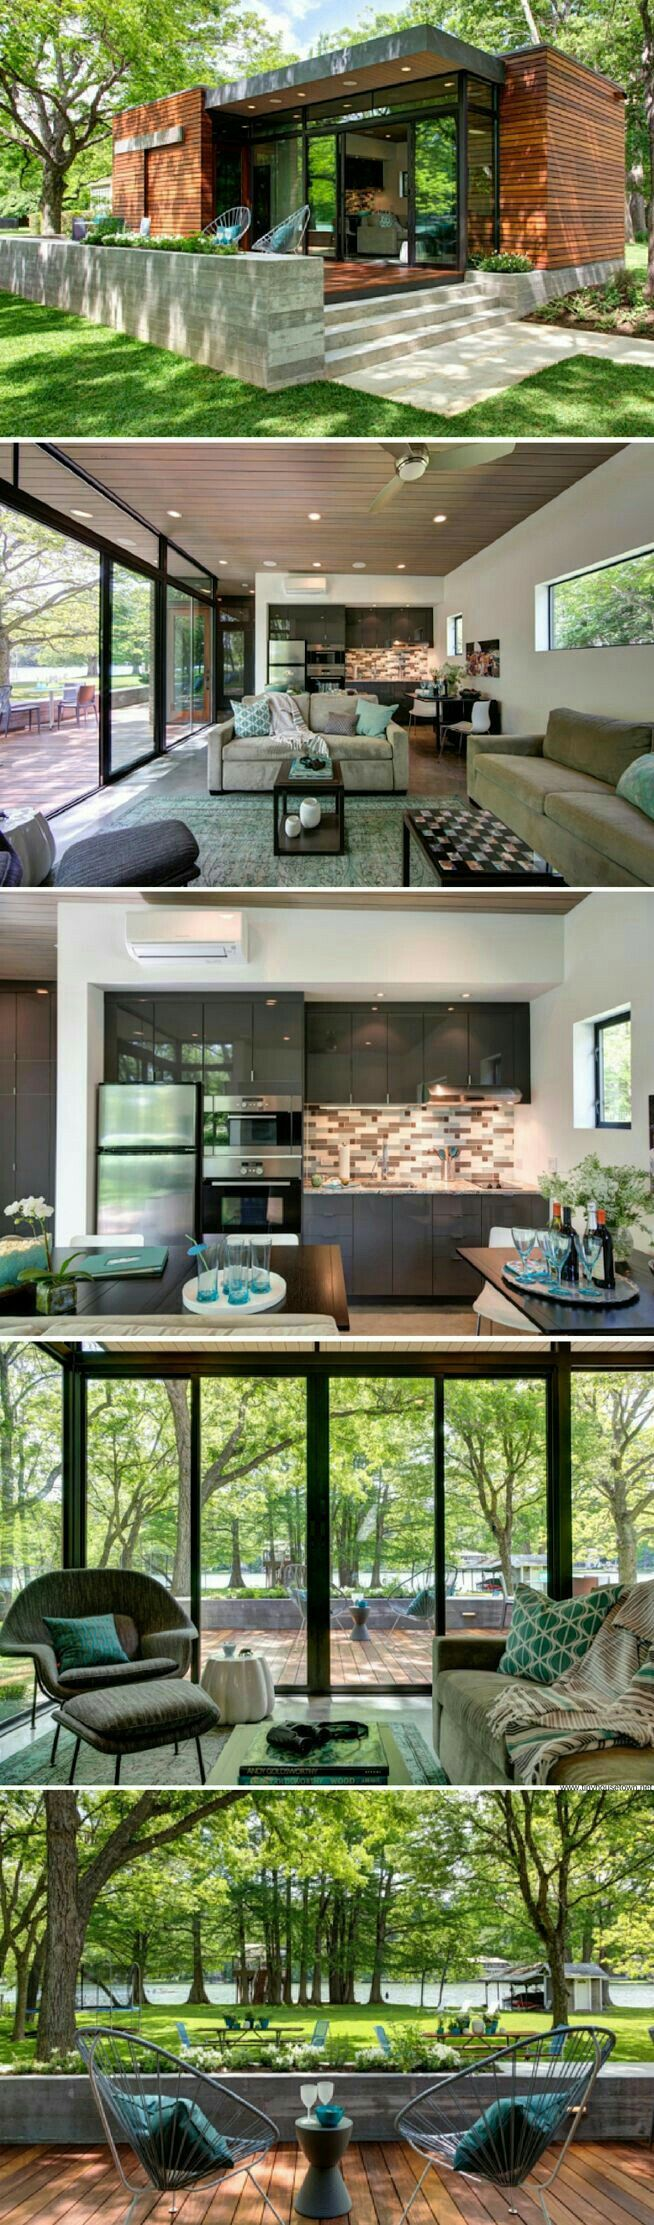 Pin by ersel sengel on stoneart pinterest tiny houses house and